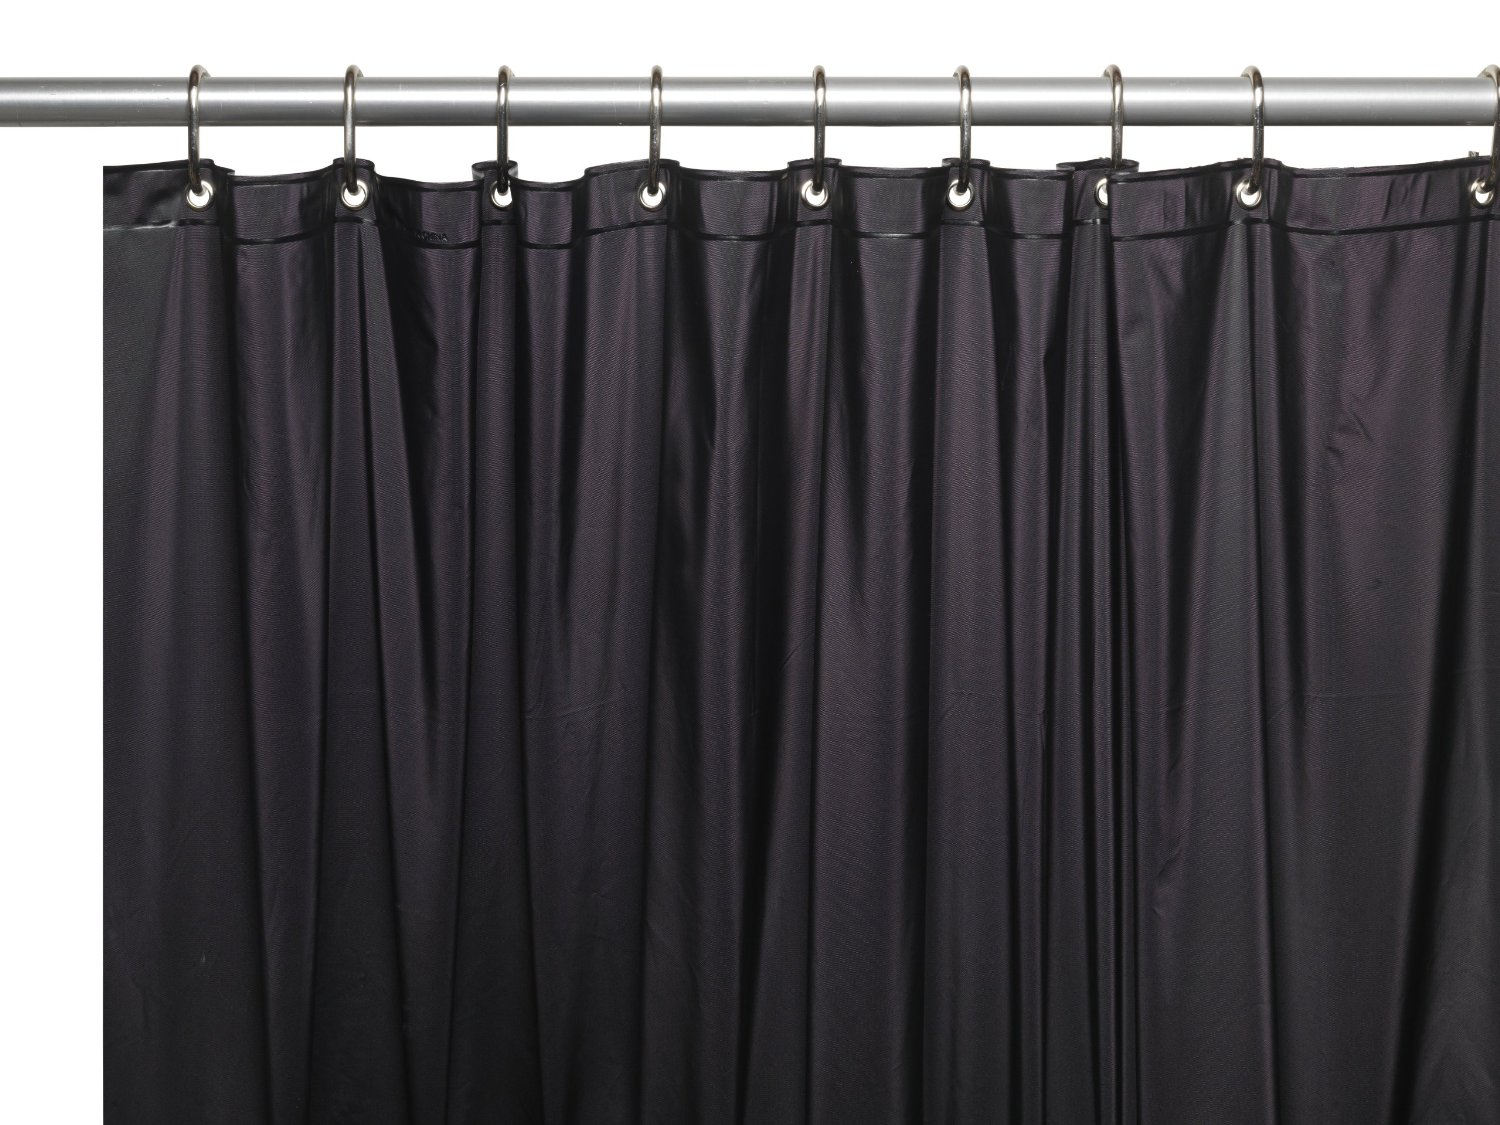 Charmant Black 3 Gauge Vinyl Shower Curtain Liner With Weighted Magnets And Metal  Grommets